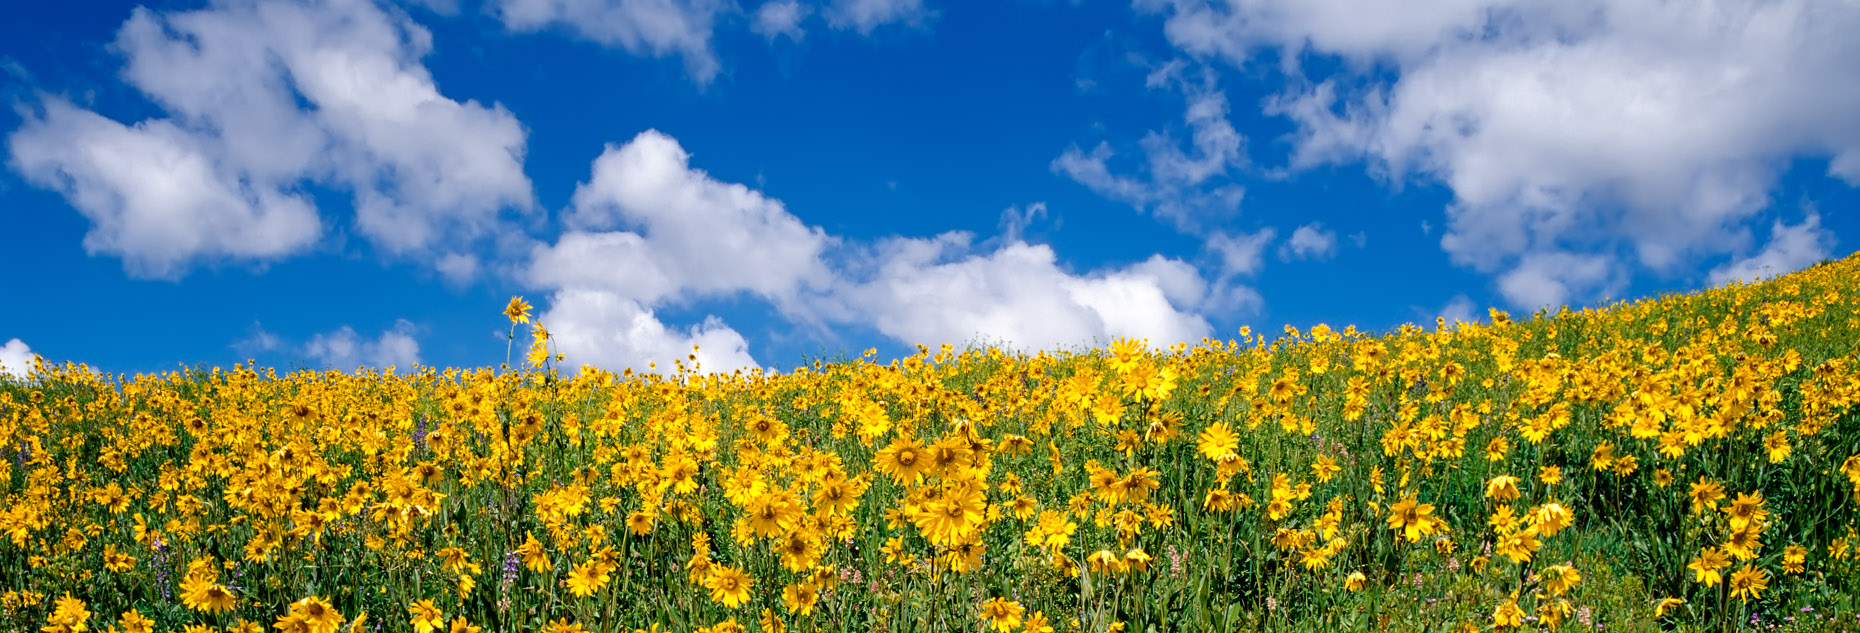 colorado_wildflowers_0002-DUP.jpg